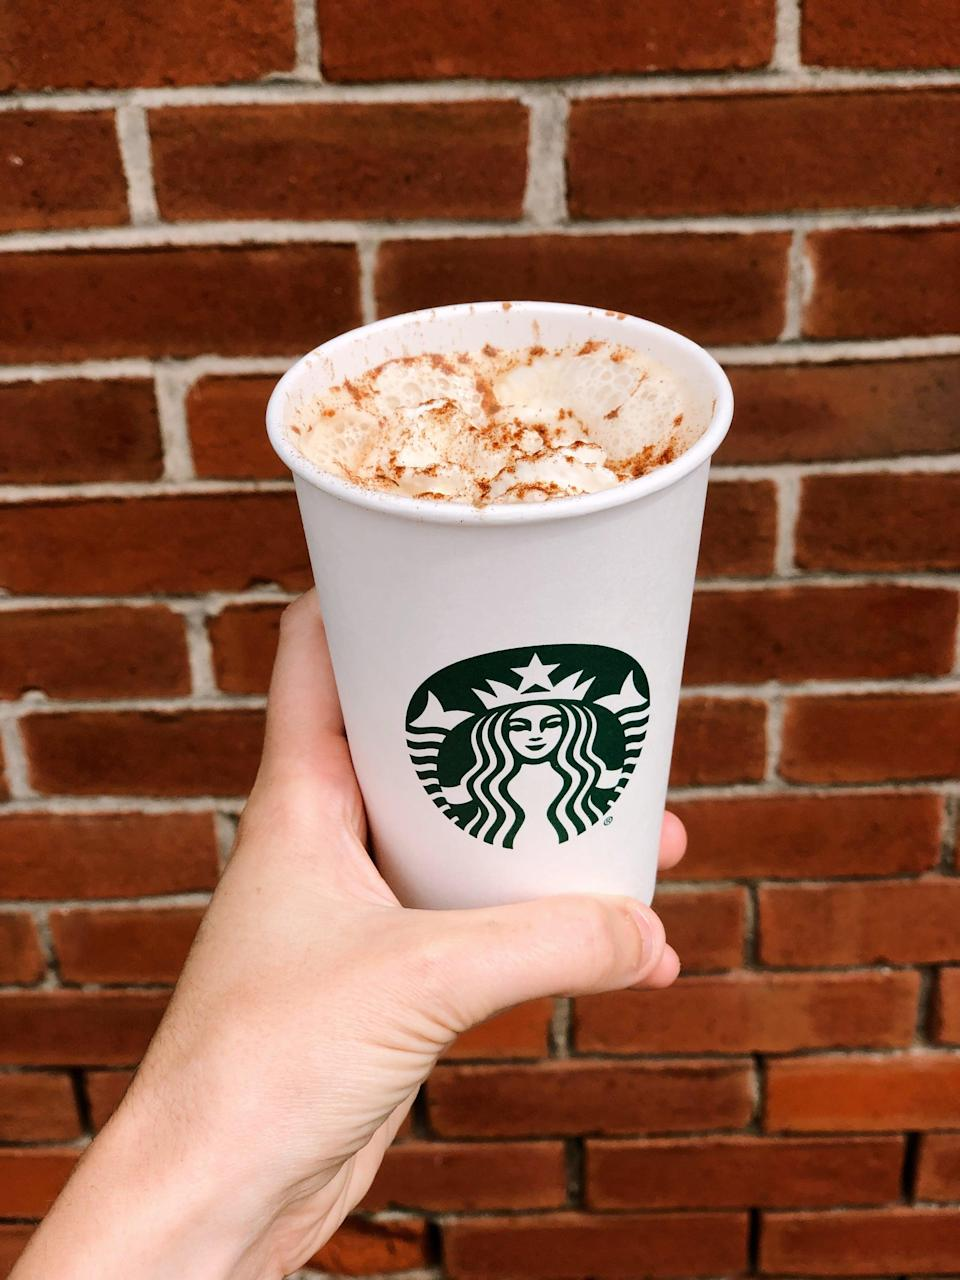 <p>This secret menu item is a fan favorite for a reason. On the Starbucks app, order a Caffè Latte and add a pump of hazelnut syrup, vanilla syrup, and pumpkin sauce. The icing on the cake? A generous amount of whipped cream and pumpkin spice topping.</p>